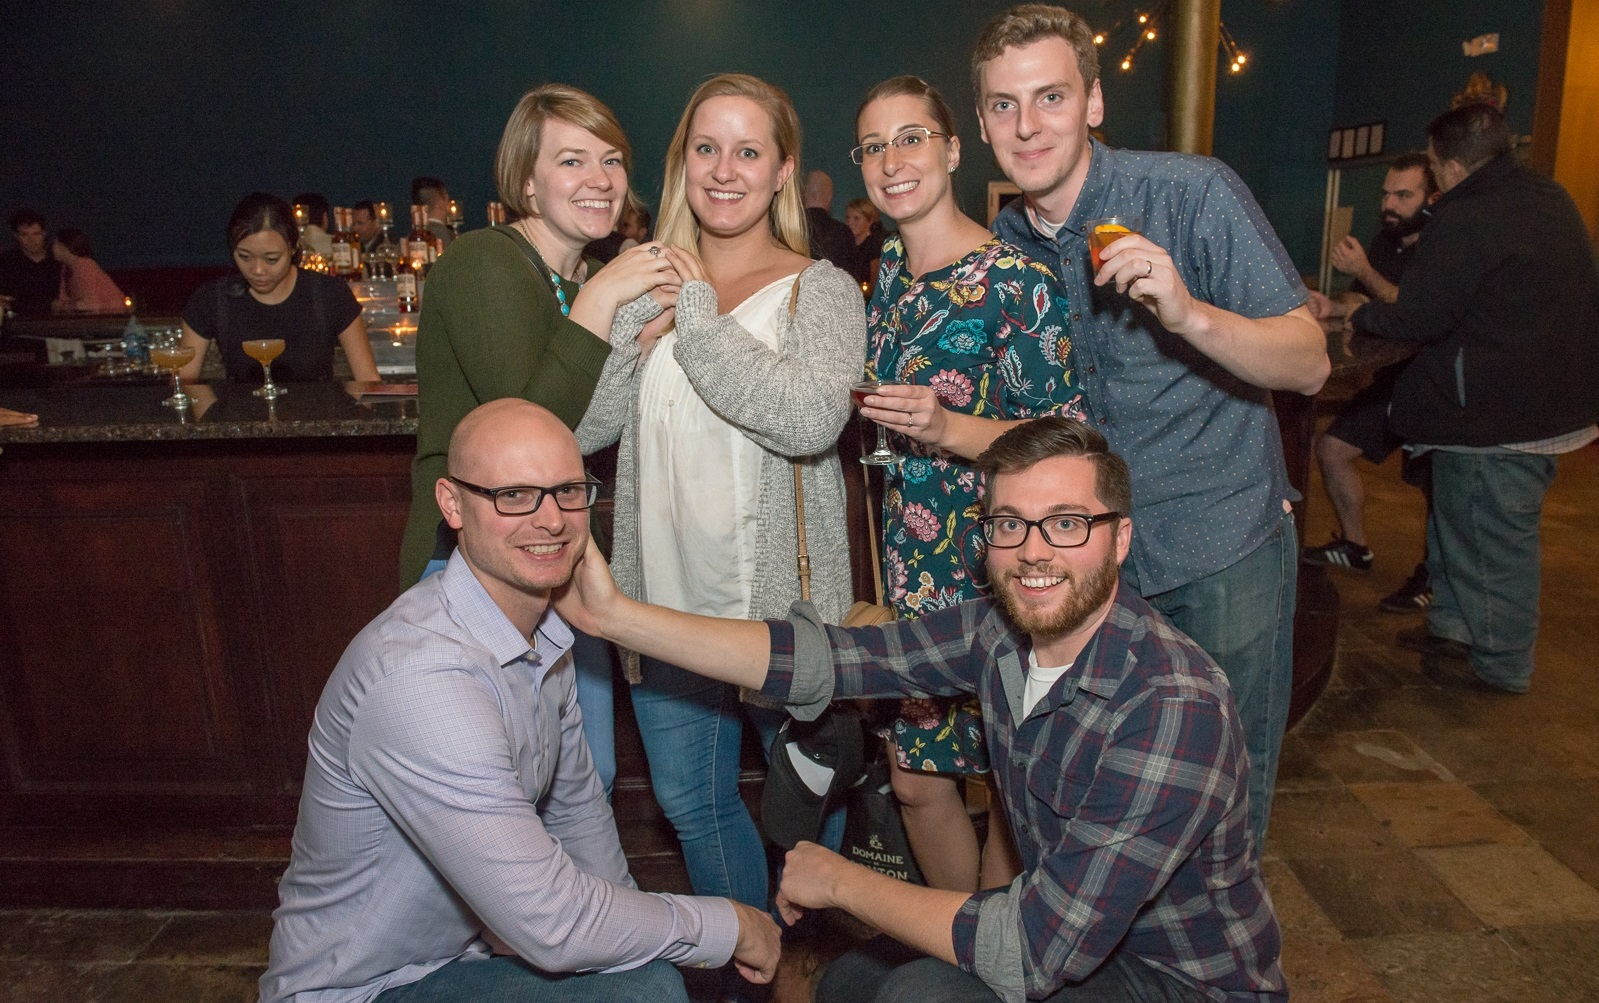 Nickel City Drink kicked off with an event at Town Ballroom called The Sacred Bond. (Matt Weinberg/Special to The News)